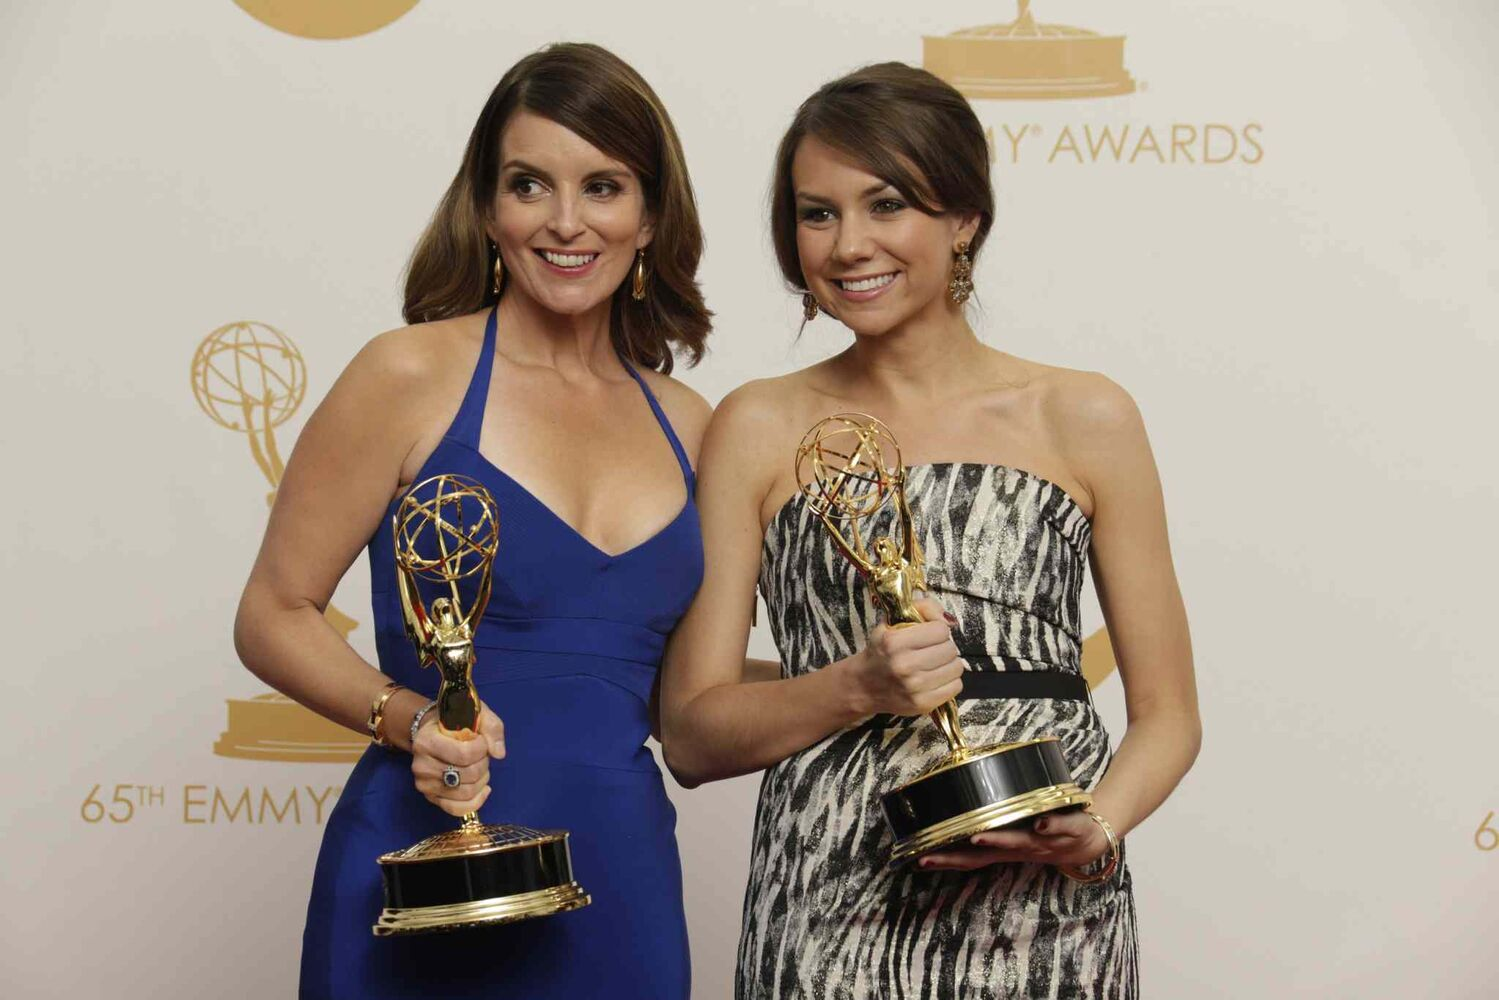 Tina Fey, left, and Tracey Wigfield won the award for outstanding writing for a comedy series for their work on 30 Rock at the 65th Primetime Emmy Awards Sunday   (Tribune Media MCT)